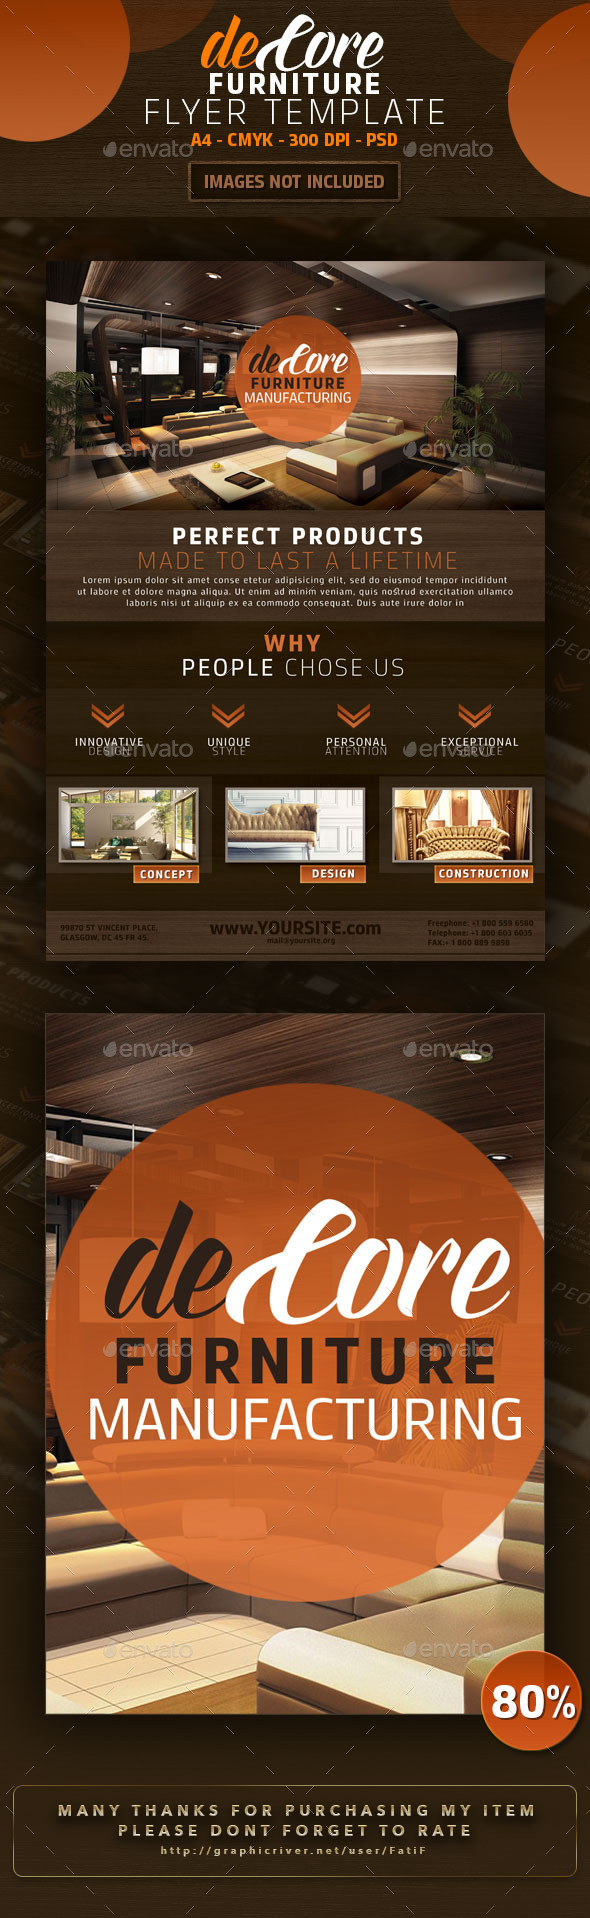 DeCore Furniture Flyer Template - Corporate Flyers